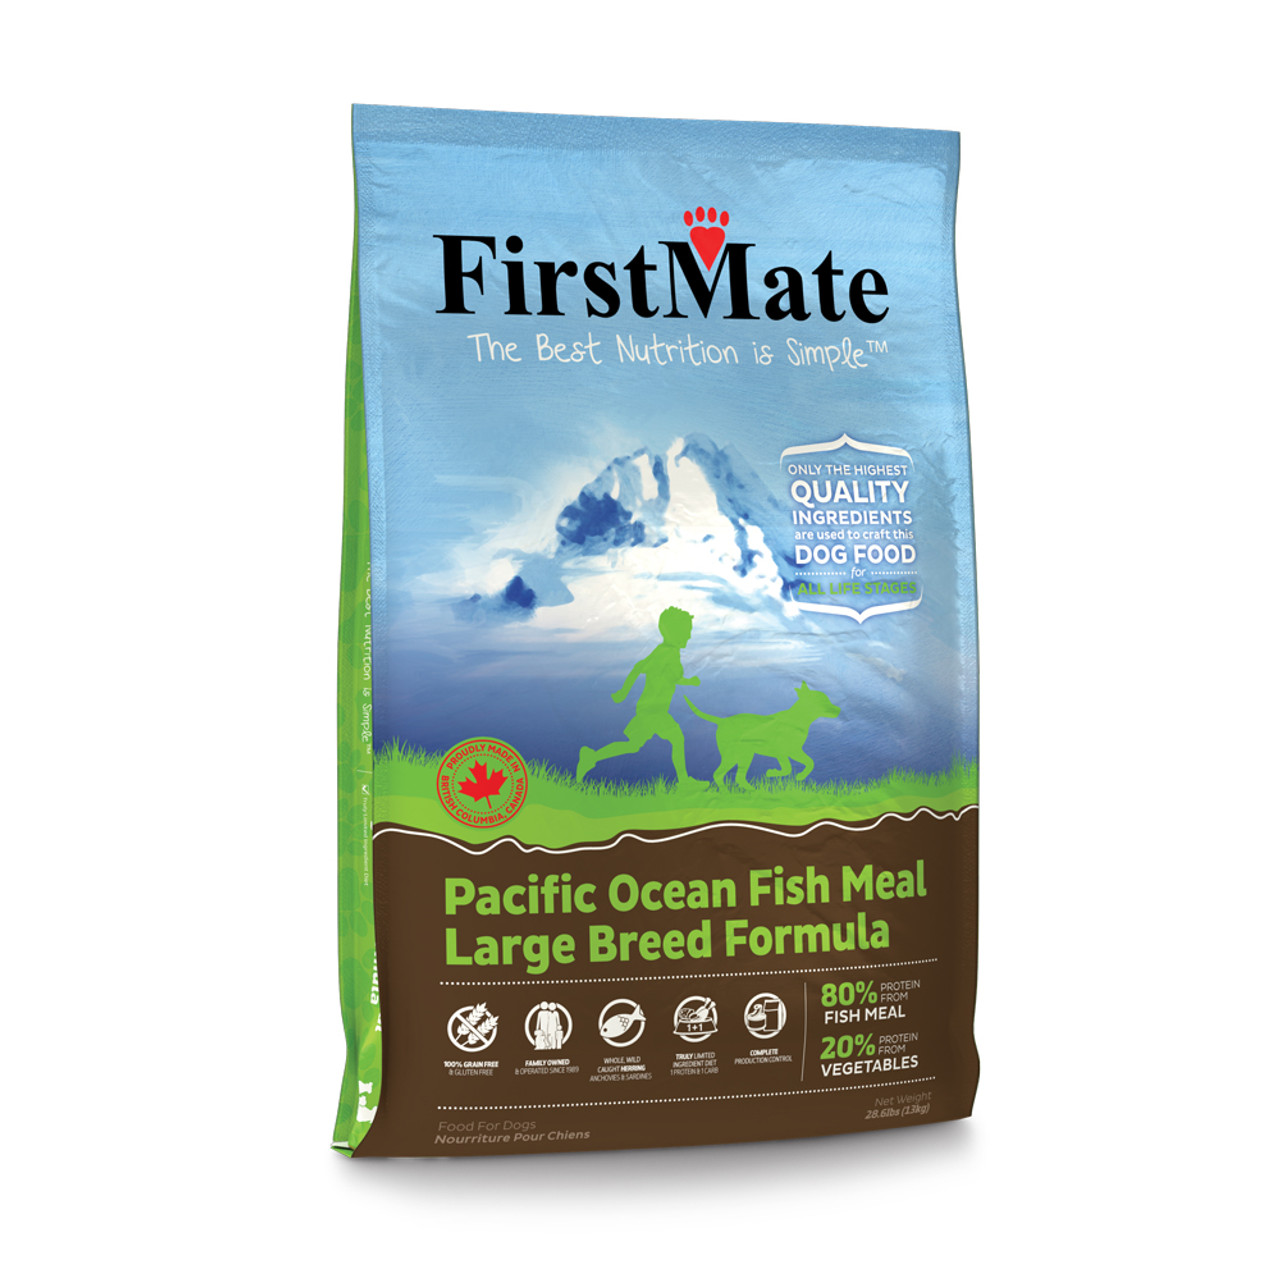 FirstMate Pacific Ocean Fish Meal Large Breed Formula Dry Dog Food